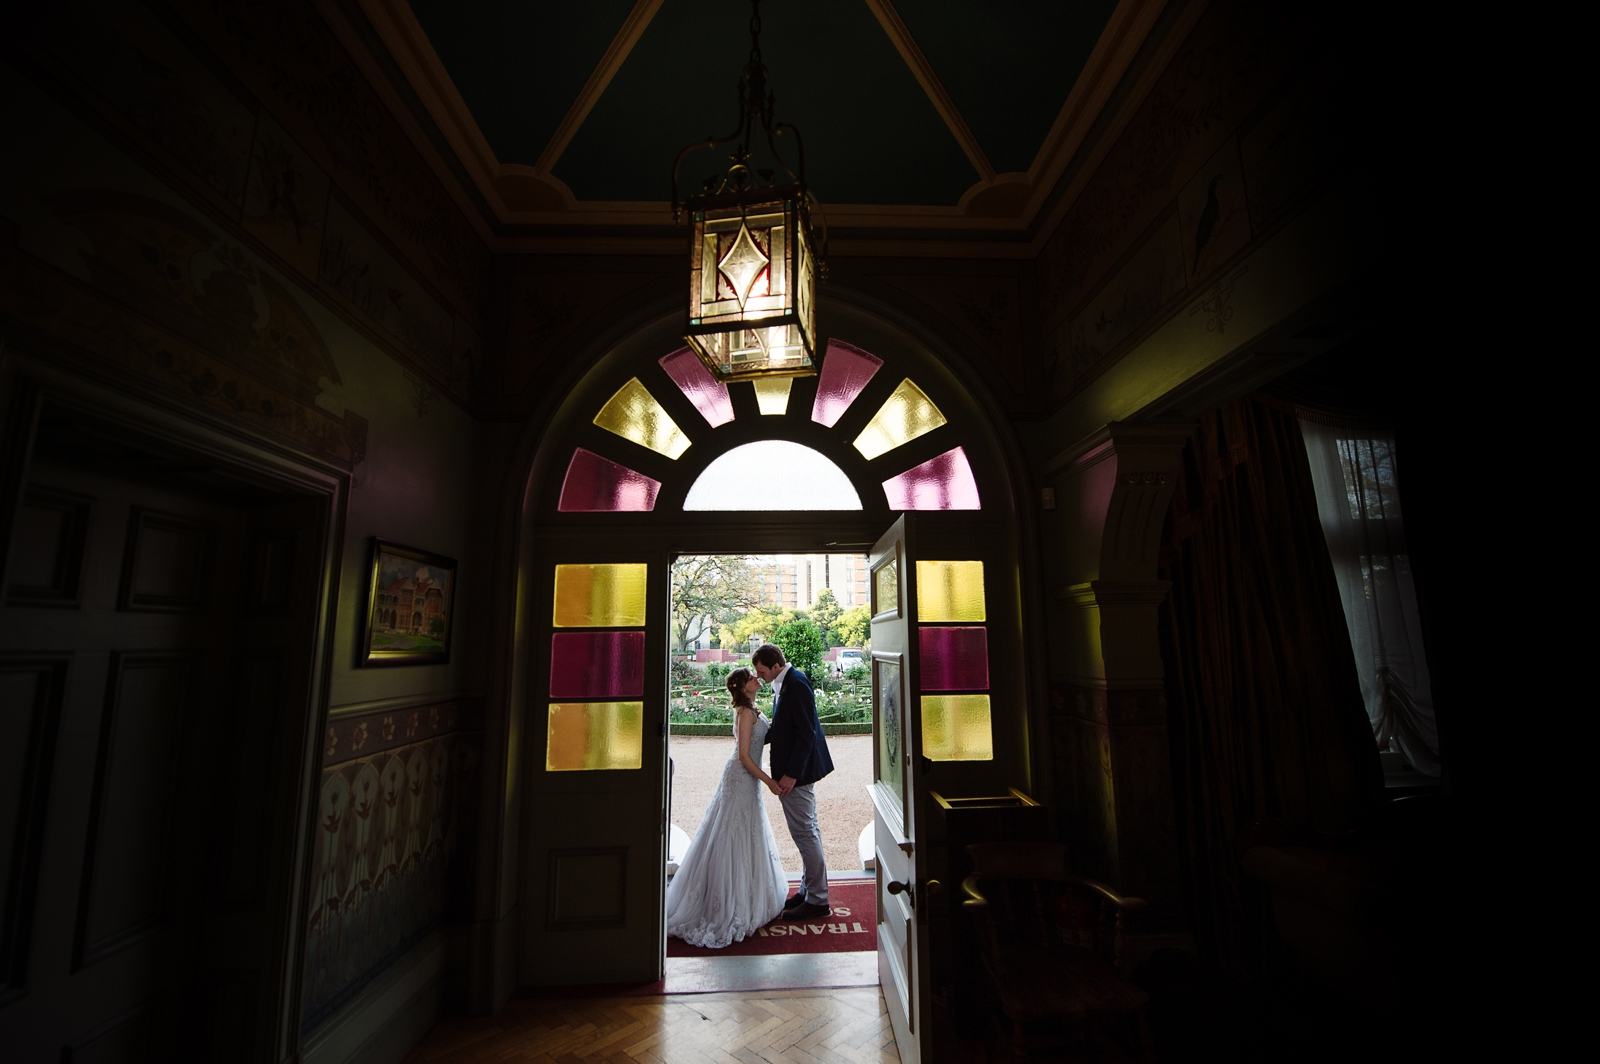 Bride and Groom with stain glass windows